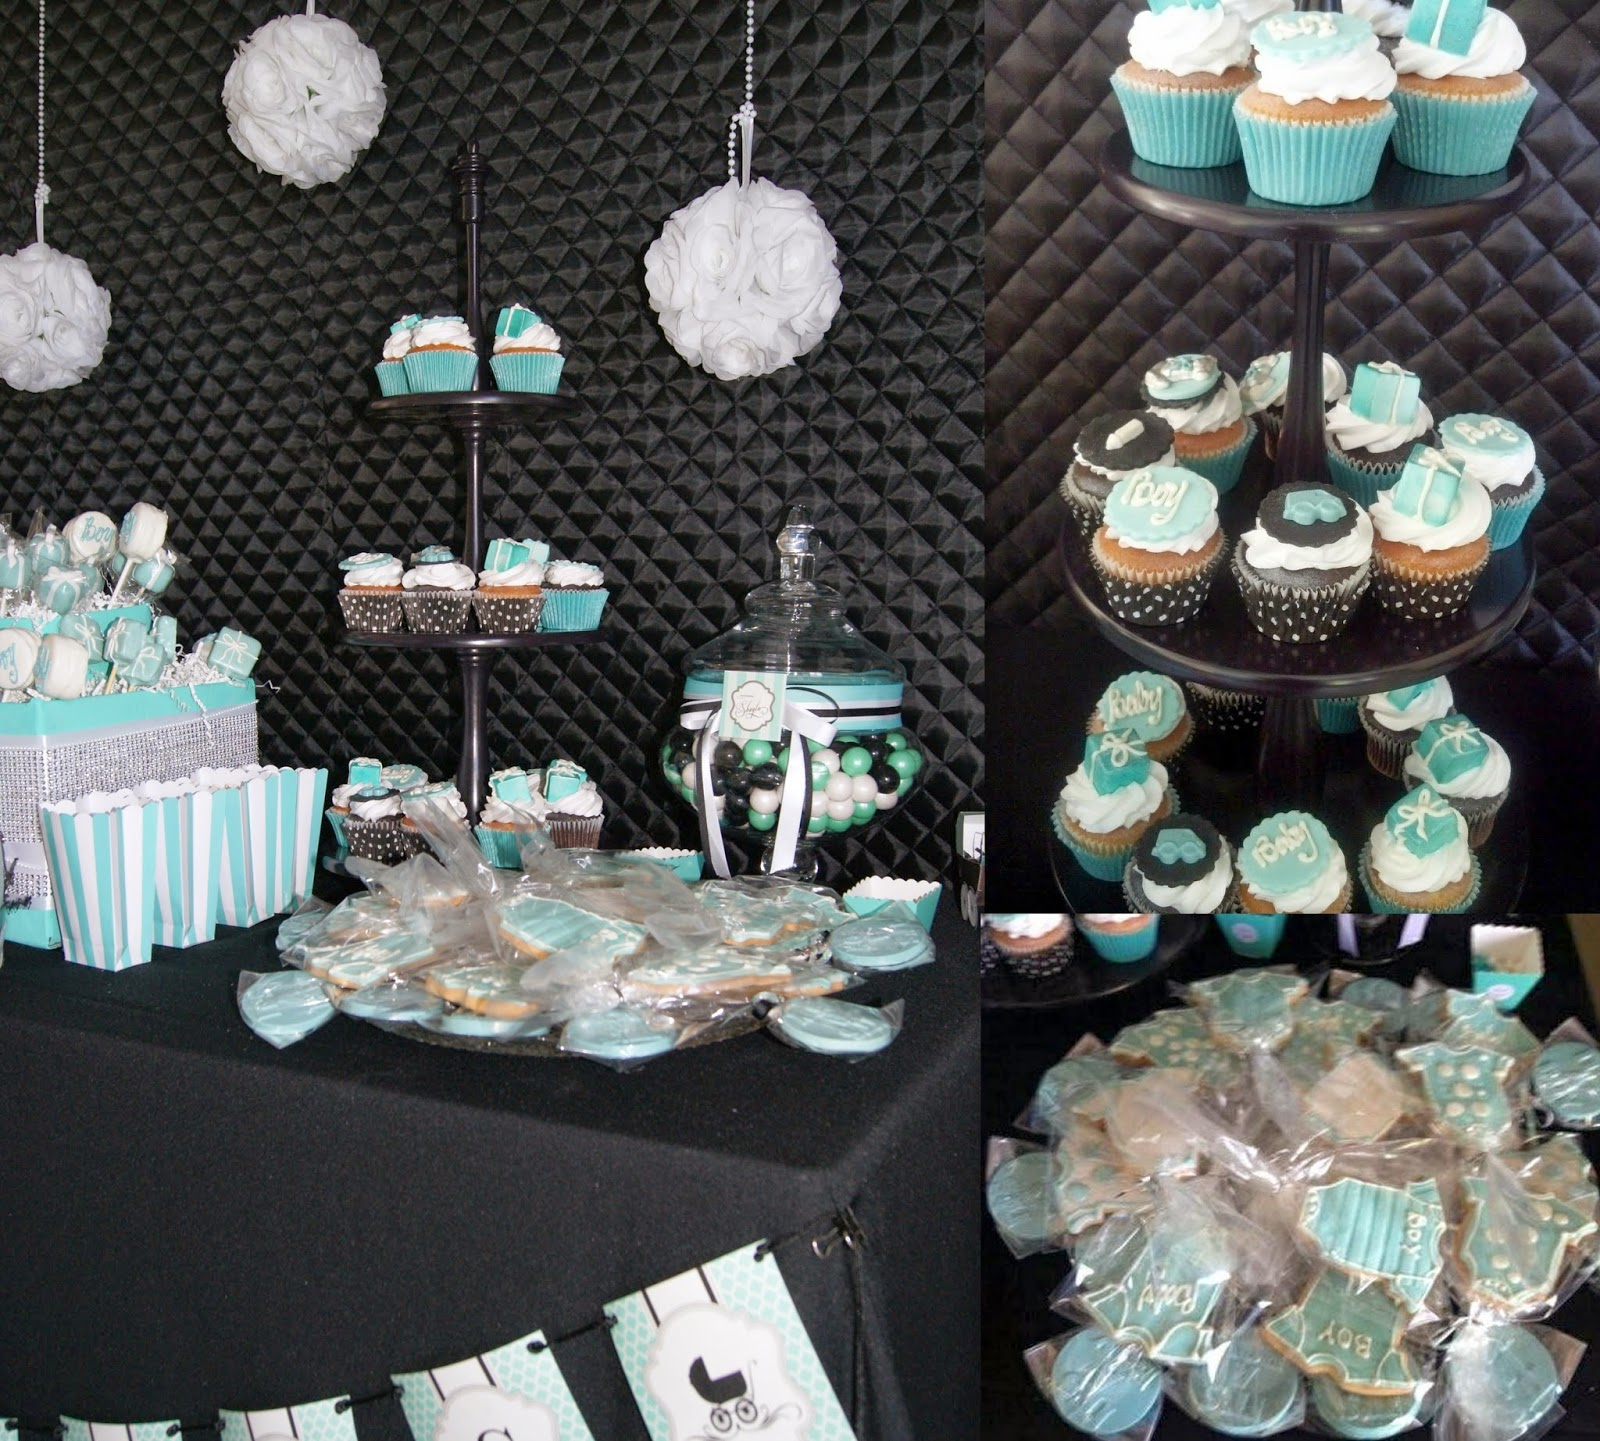 candy station, breakfast at tiffany's party, allthingsslim,